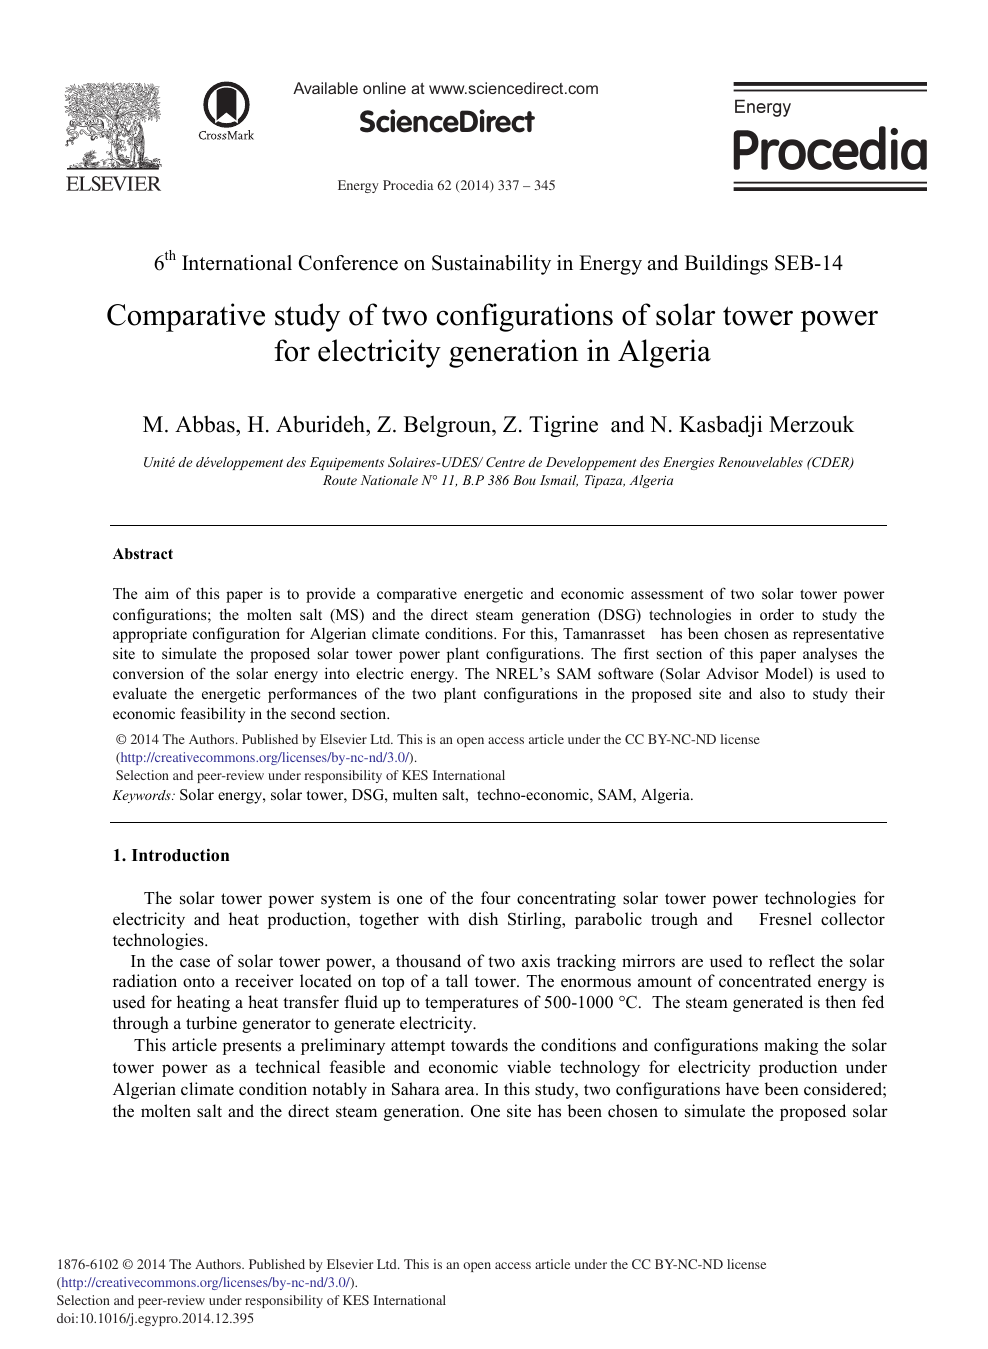 Comparative Study of Two Configurations of Solar Tower Power